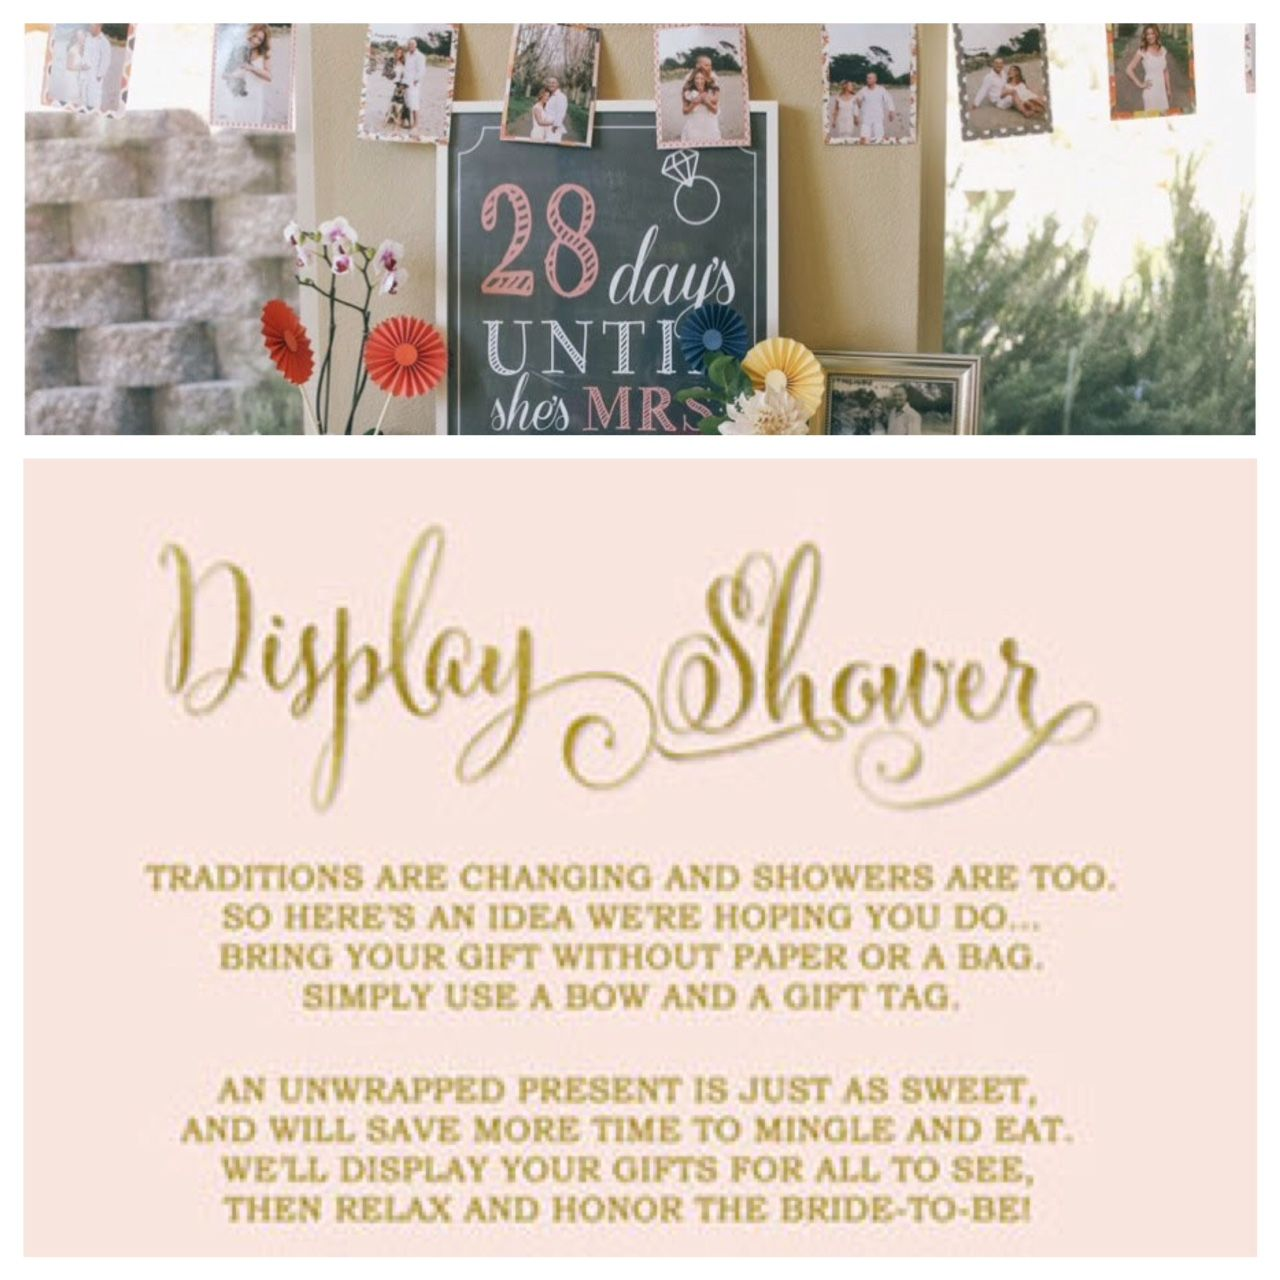 Display Baby Shower: Traditions Are Changing And Showers Are Too. So Here's An